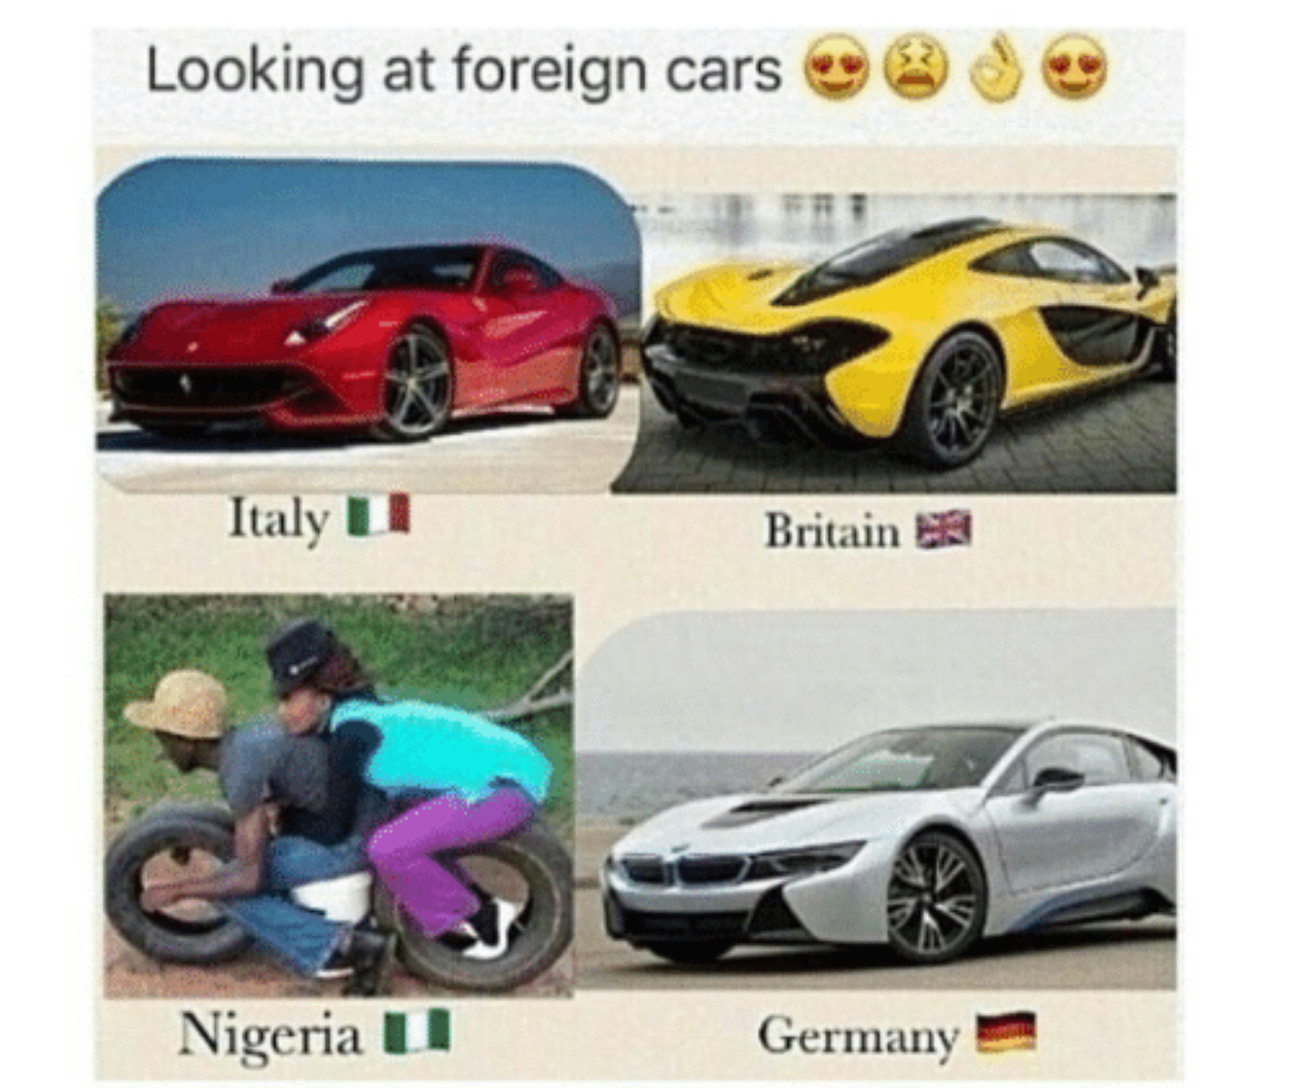 Foreign cars *i am not racist, but this is funny* - meme